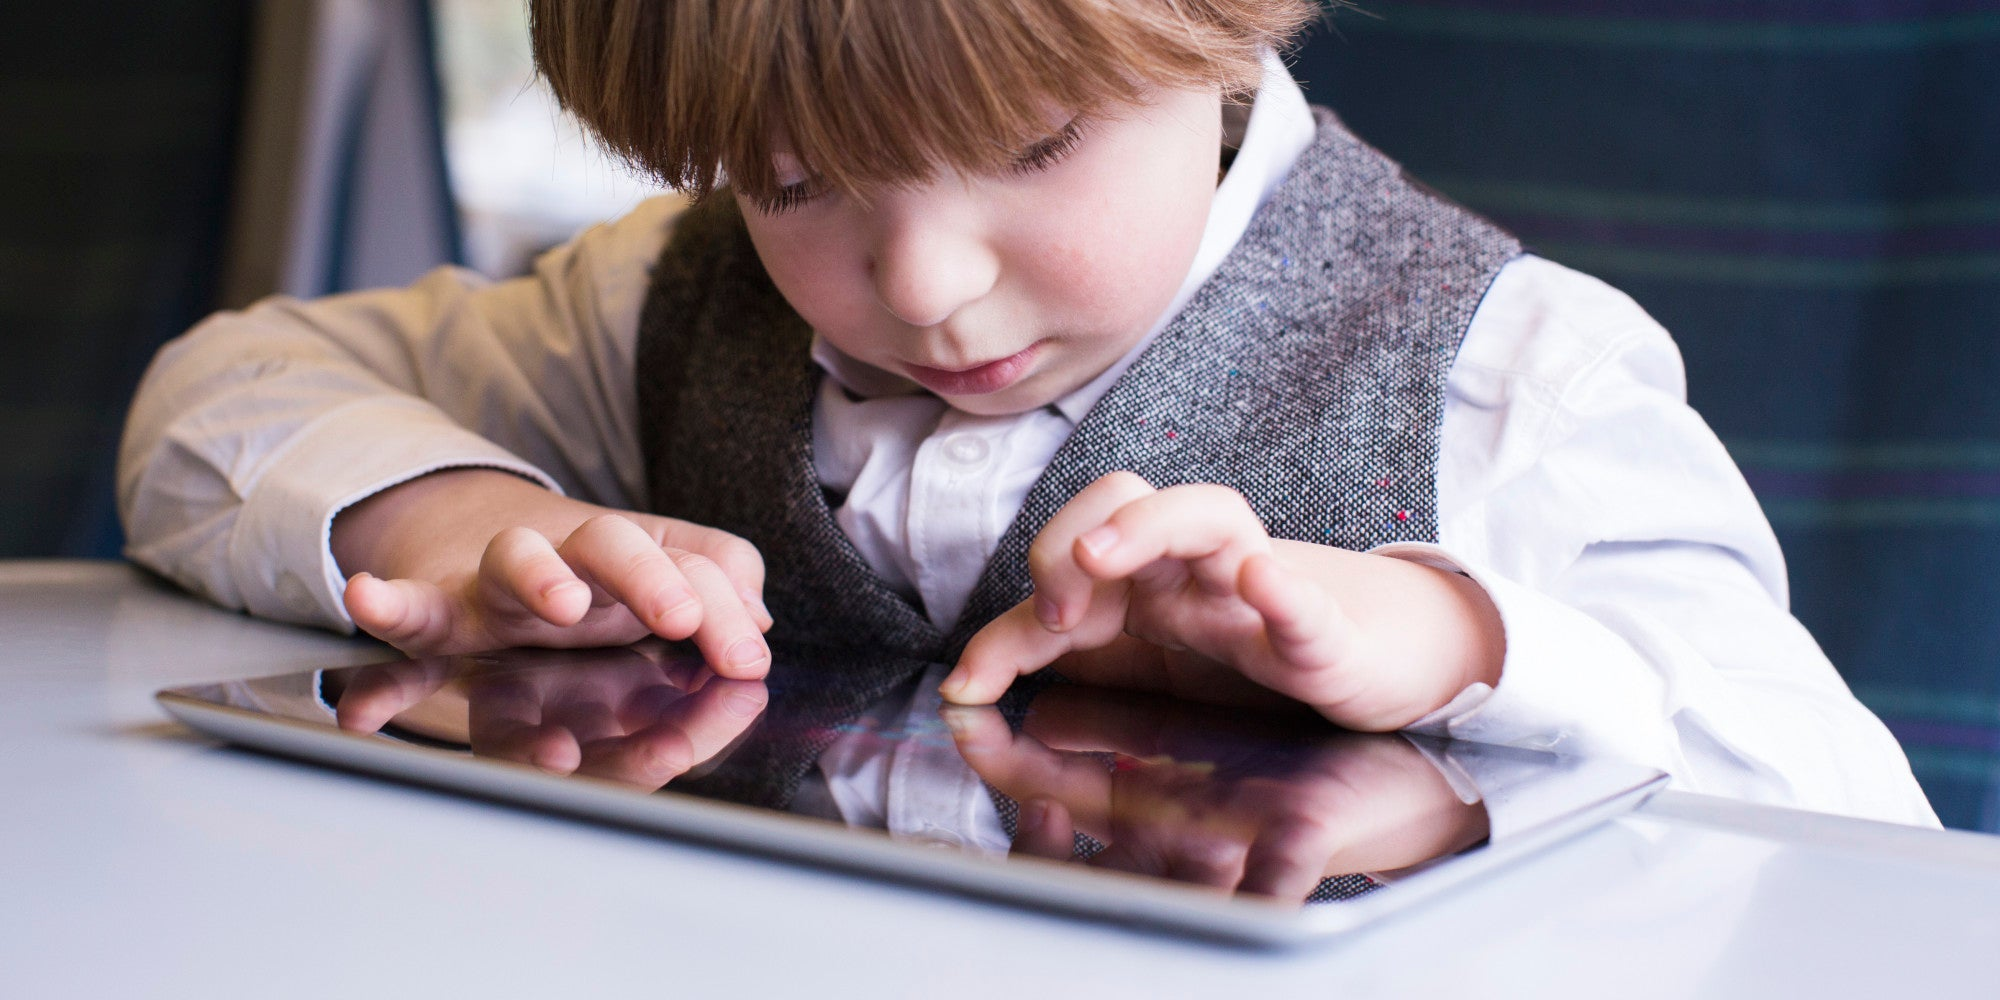 5 Reasons Why It's Okay For The Kids To Have An iPad